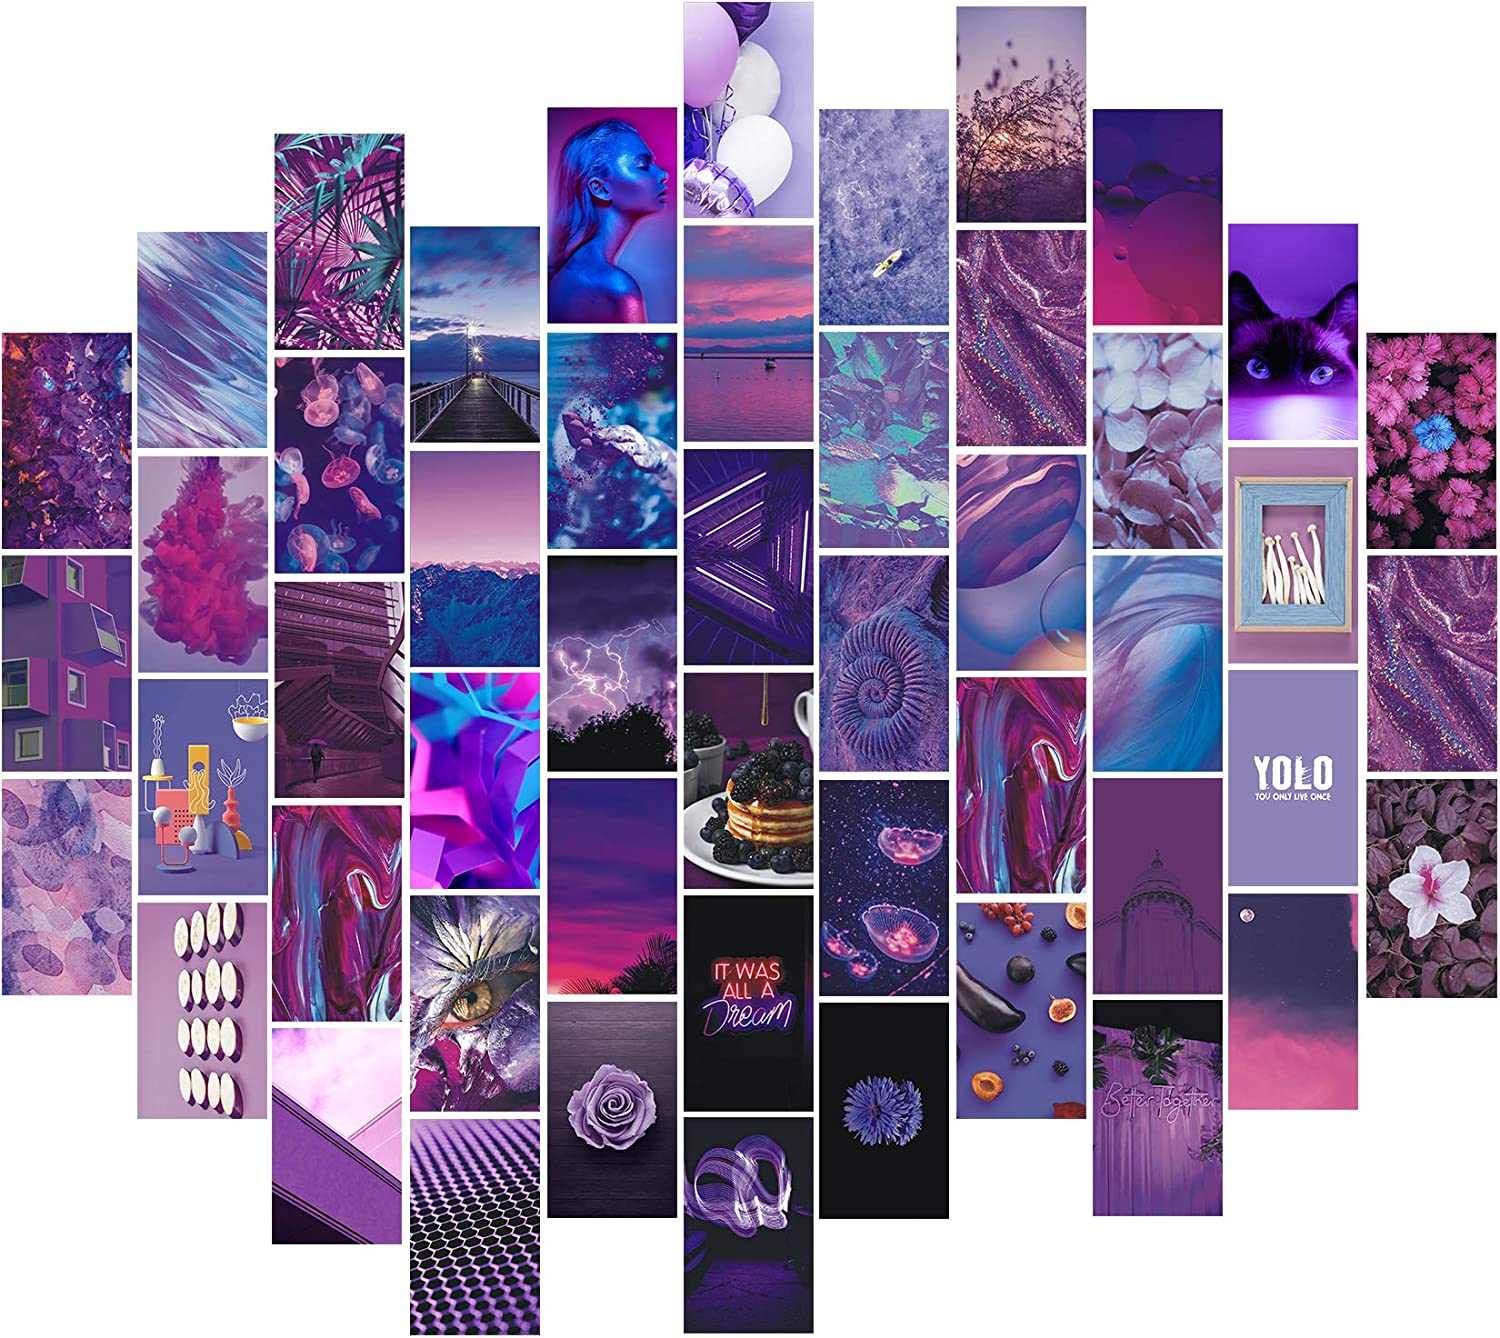 Msaaex Wall Collage Kit Aesthetic Pictures Bedroom Decor for Teen Girls Purple & Pink Posters with Double Sided Tape for Room Aesthetic - Best Gift- 50 Pcs